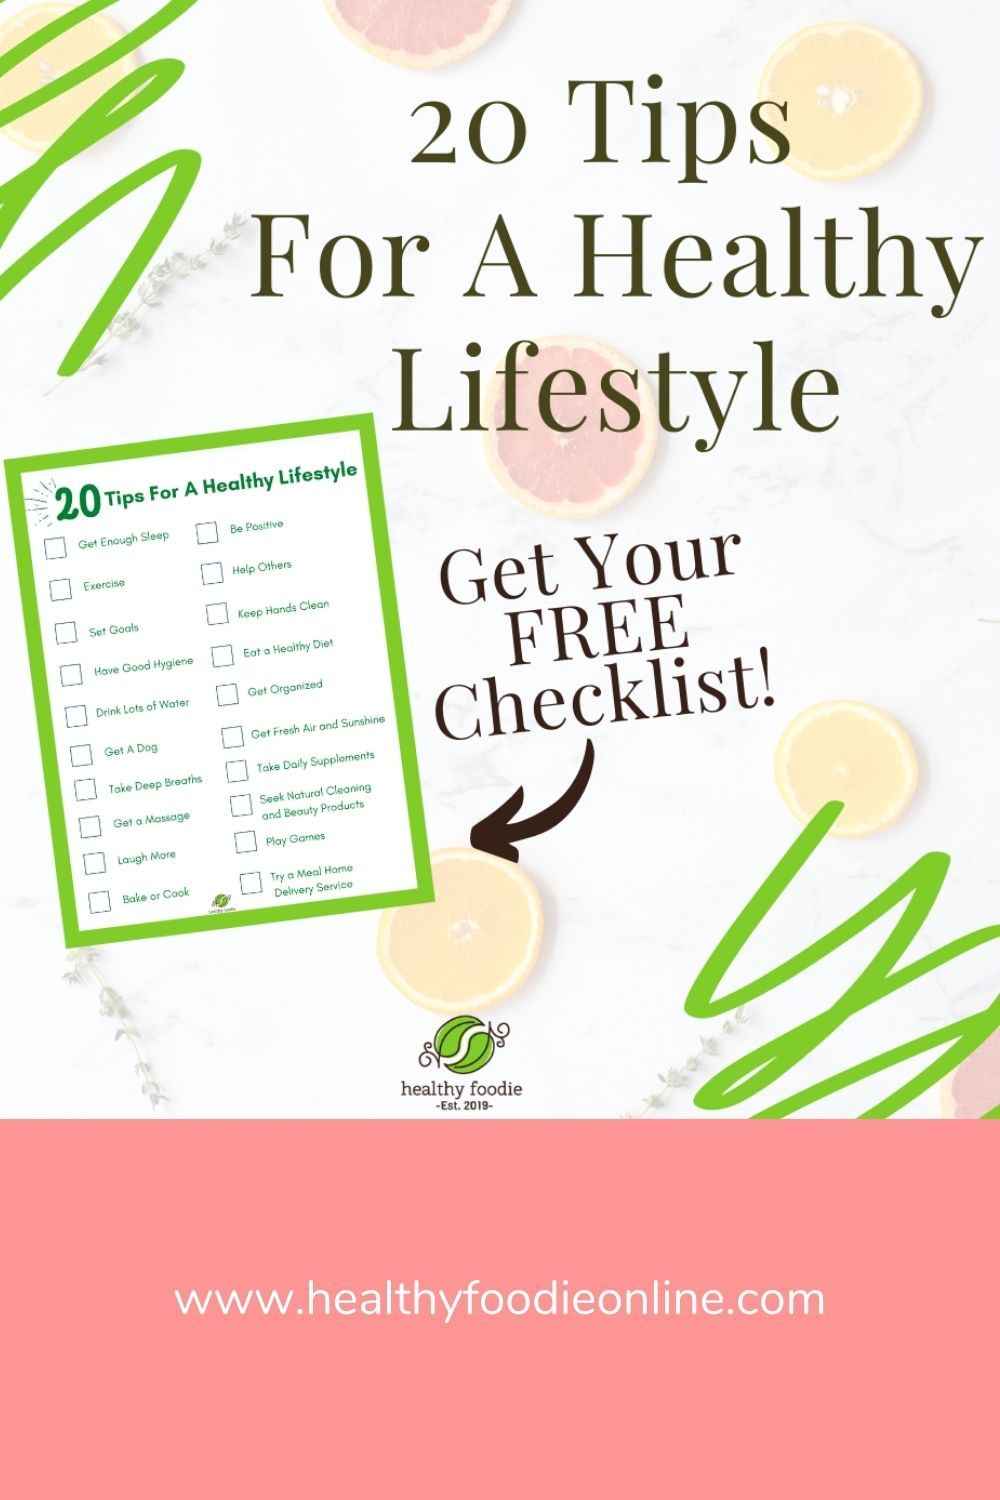 20 tips for a healthy lifestyle